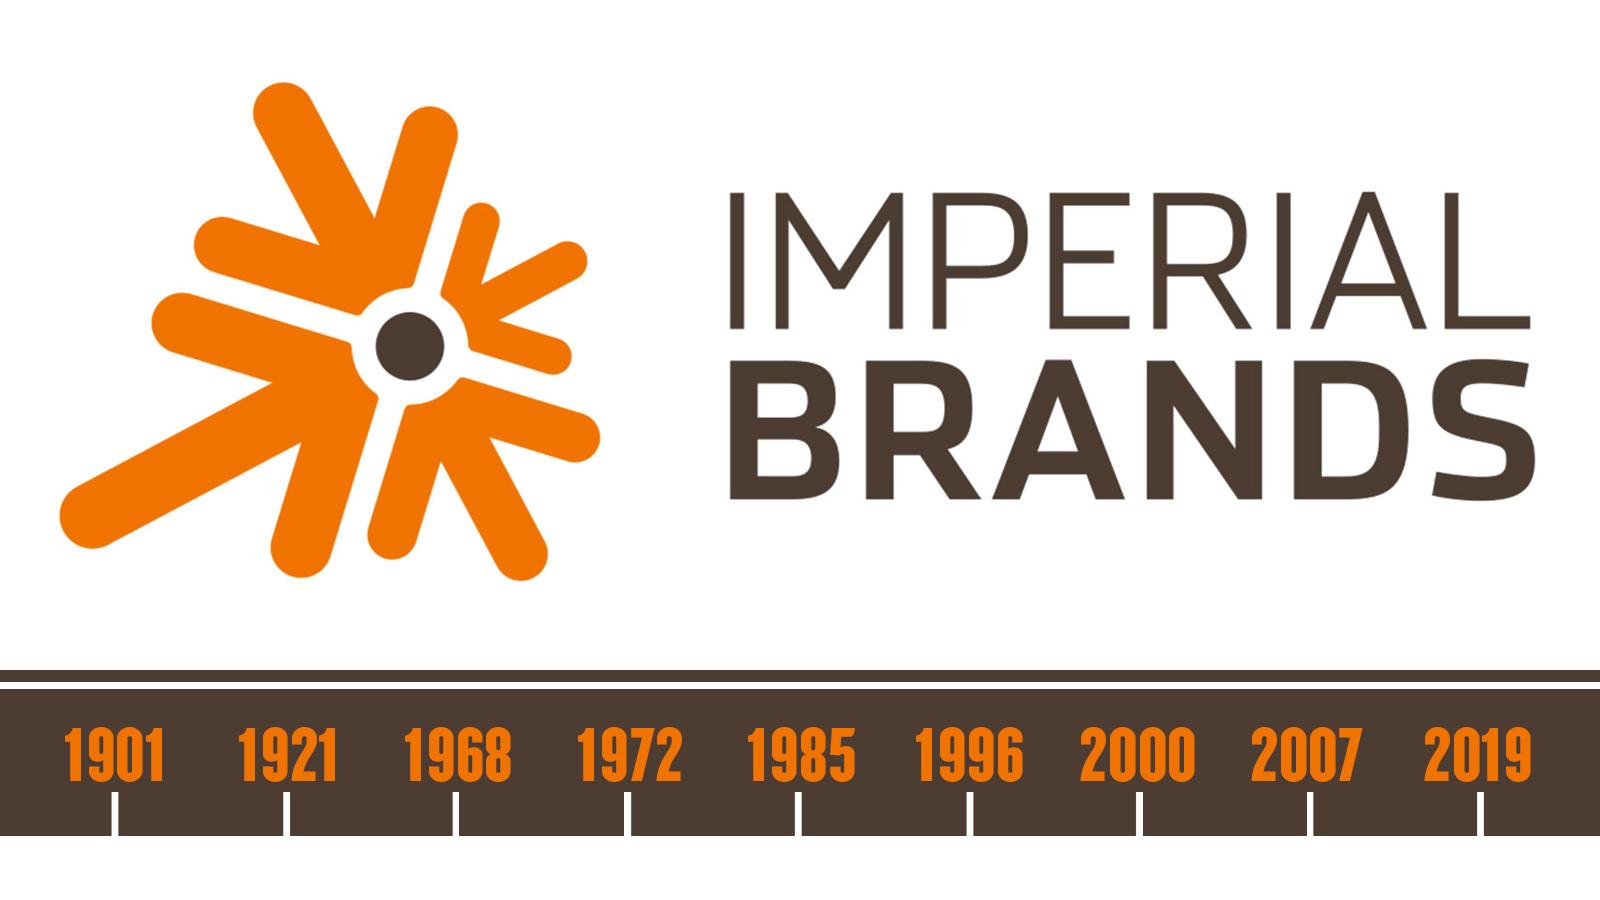 A Timeline Of How Imperial Brands Came To Be